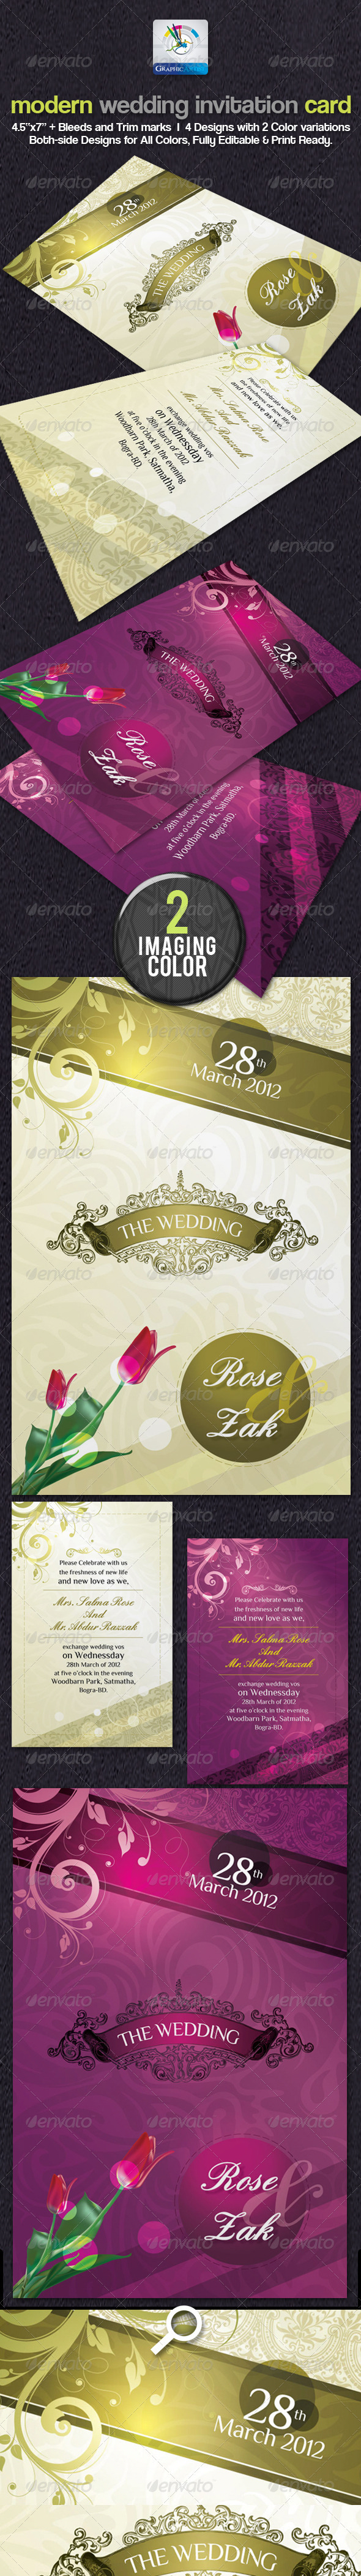 Modern Wedding Invitation Cards - Weddings Cards & Invites